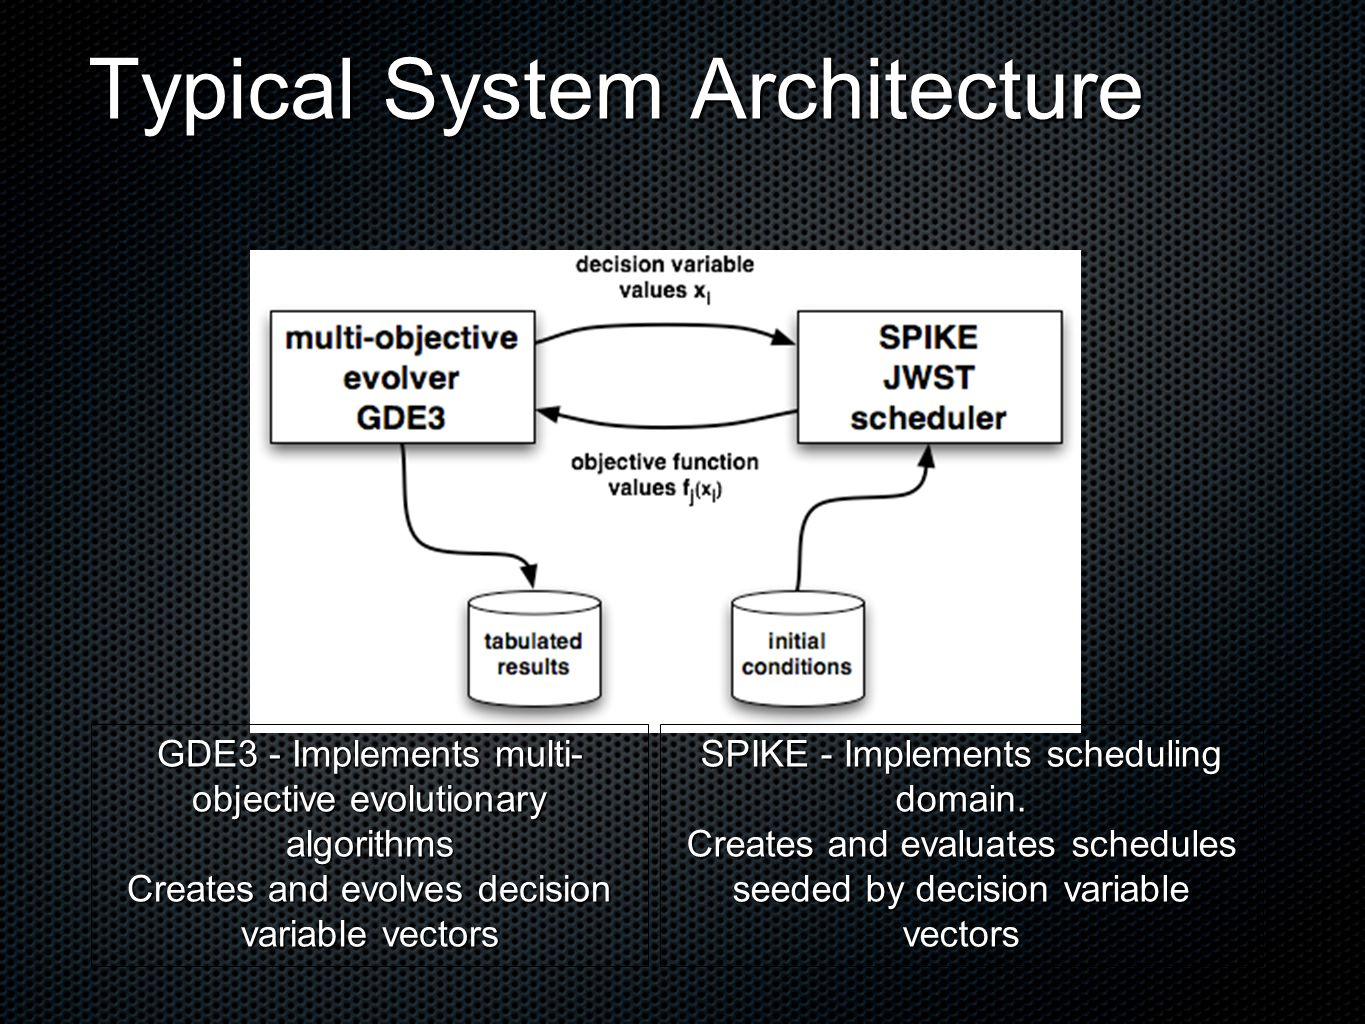 Typical System Architecture GDE3 - Implements multi- objective evolutionary algorithms Creates and evolves decision variable vectors SPIKE - Implements scheduling domain.